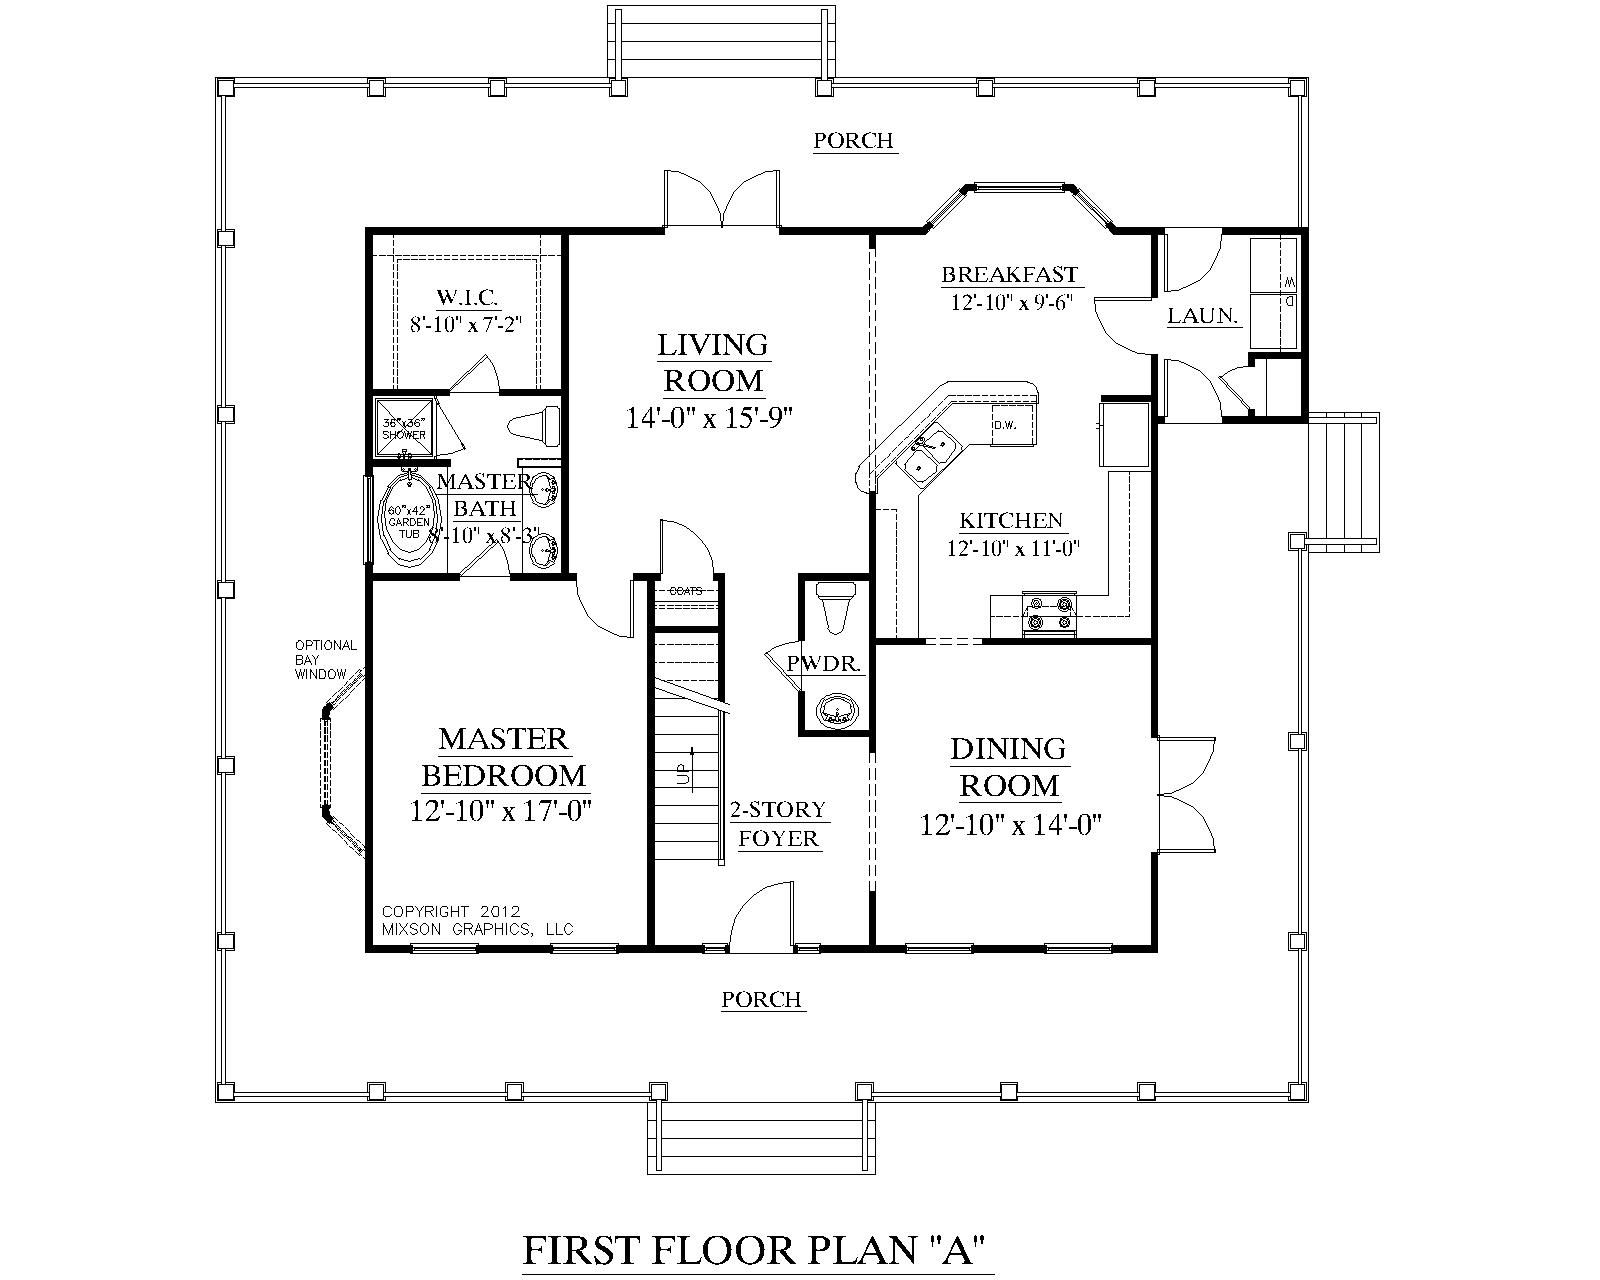 Small 3 Bedroom House Plans simple rectangular house plans with 2 bathrooms and garage porch at front Small One Bedroom House Plans Traditional 1 12 Story House Plan